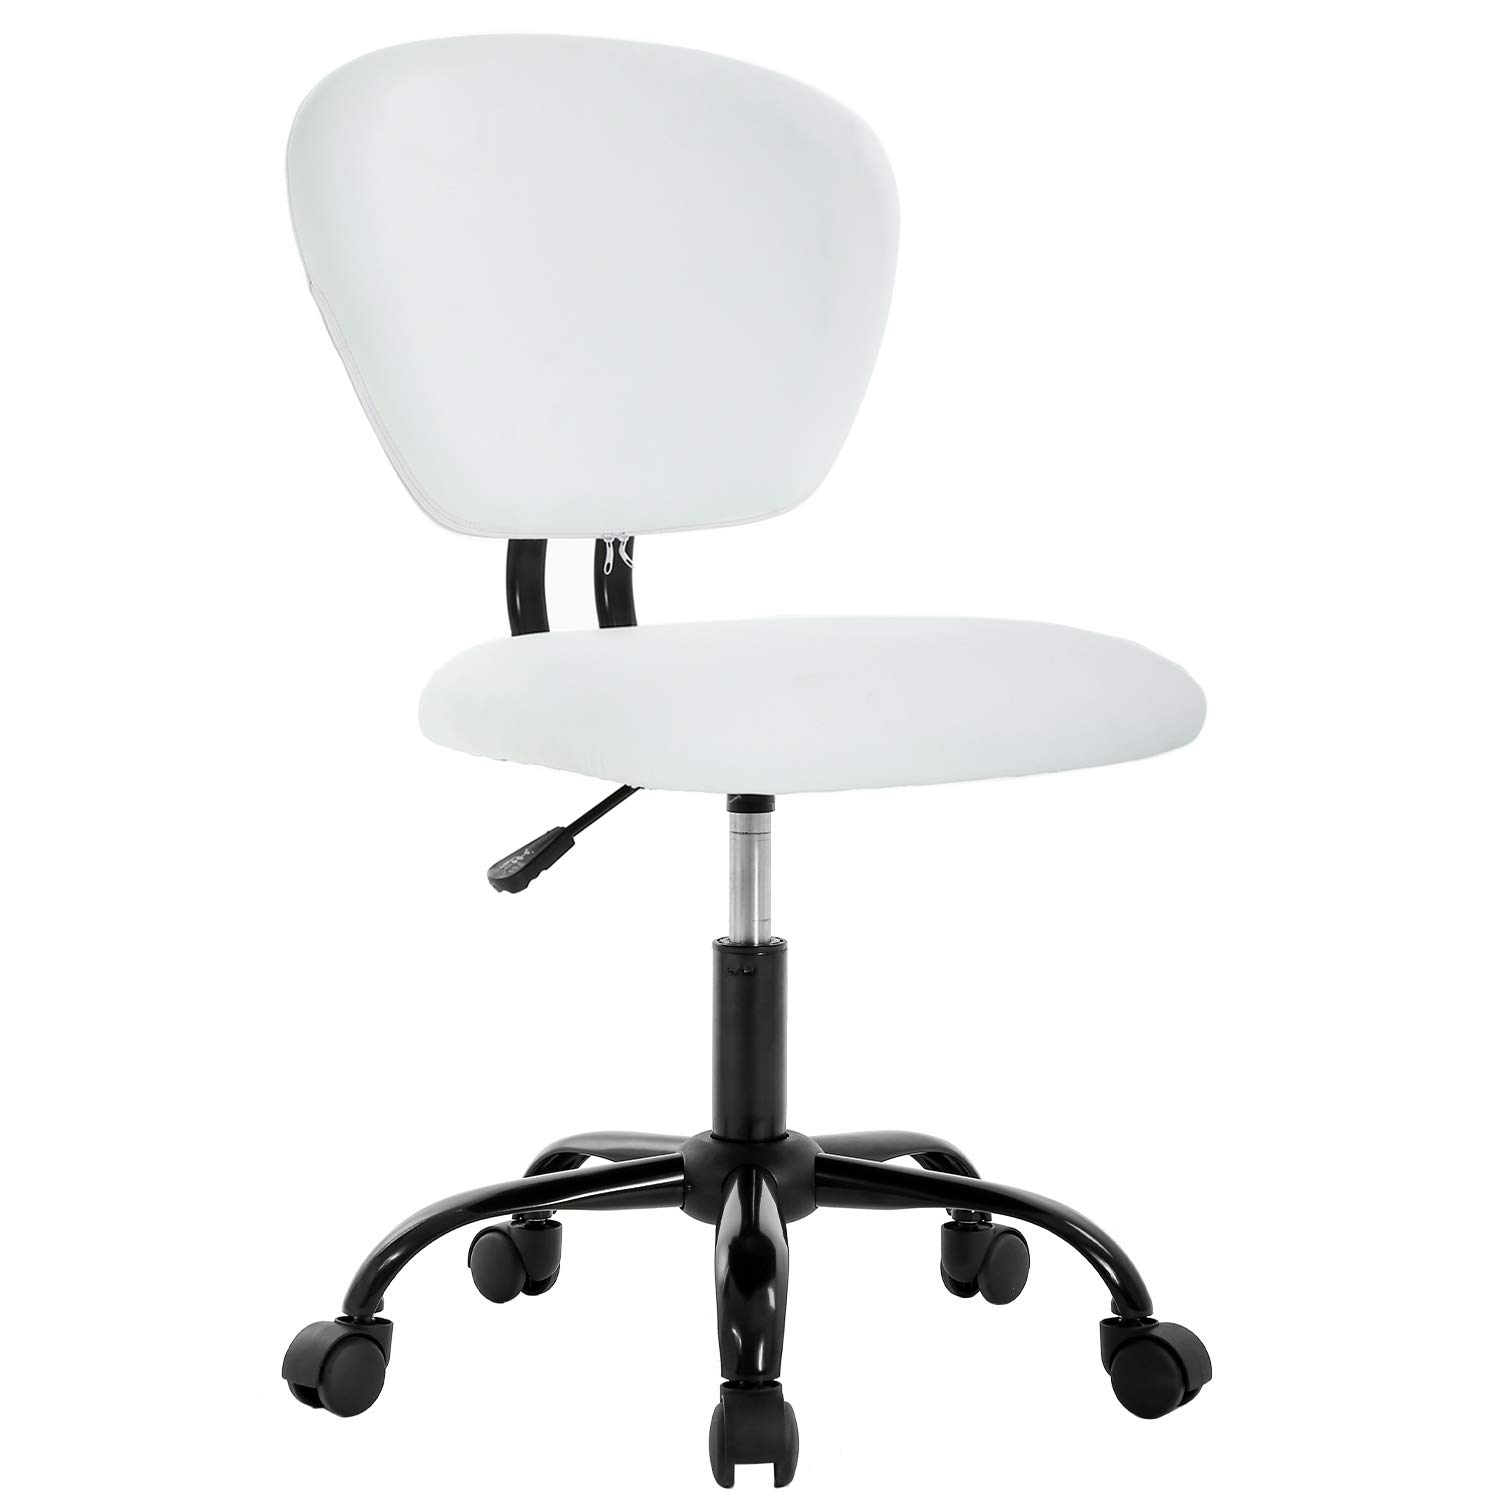 Office Chair Ergonomic Desk Chair PU Leather Computer Chair Task Rolling Swivel Stool Mid Back Executive Chair with Lumbar Support for Women Men, White